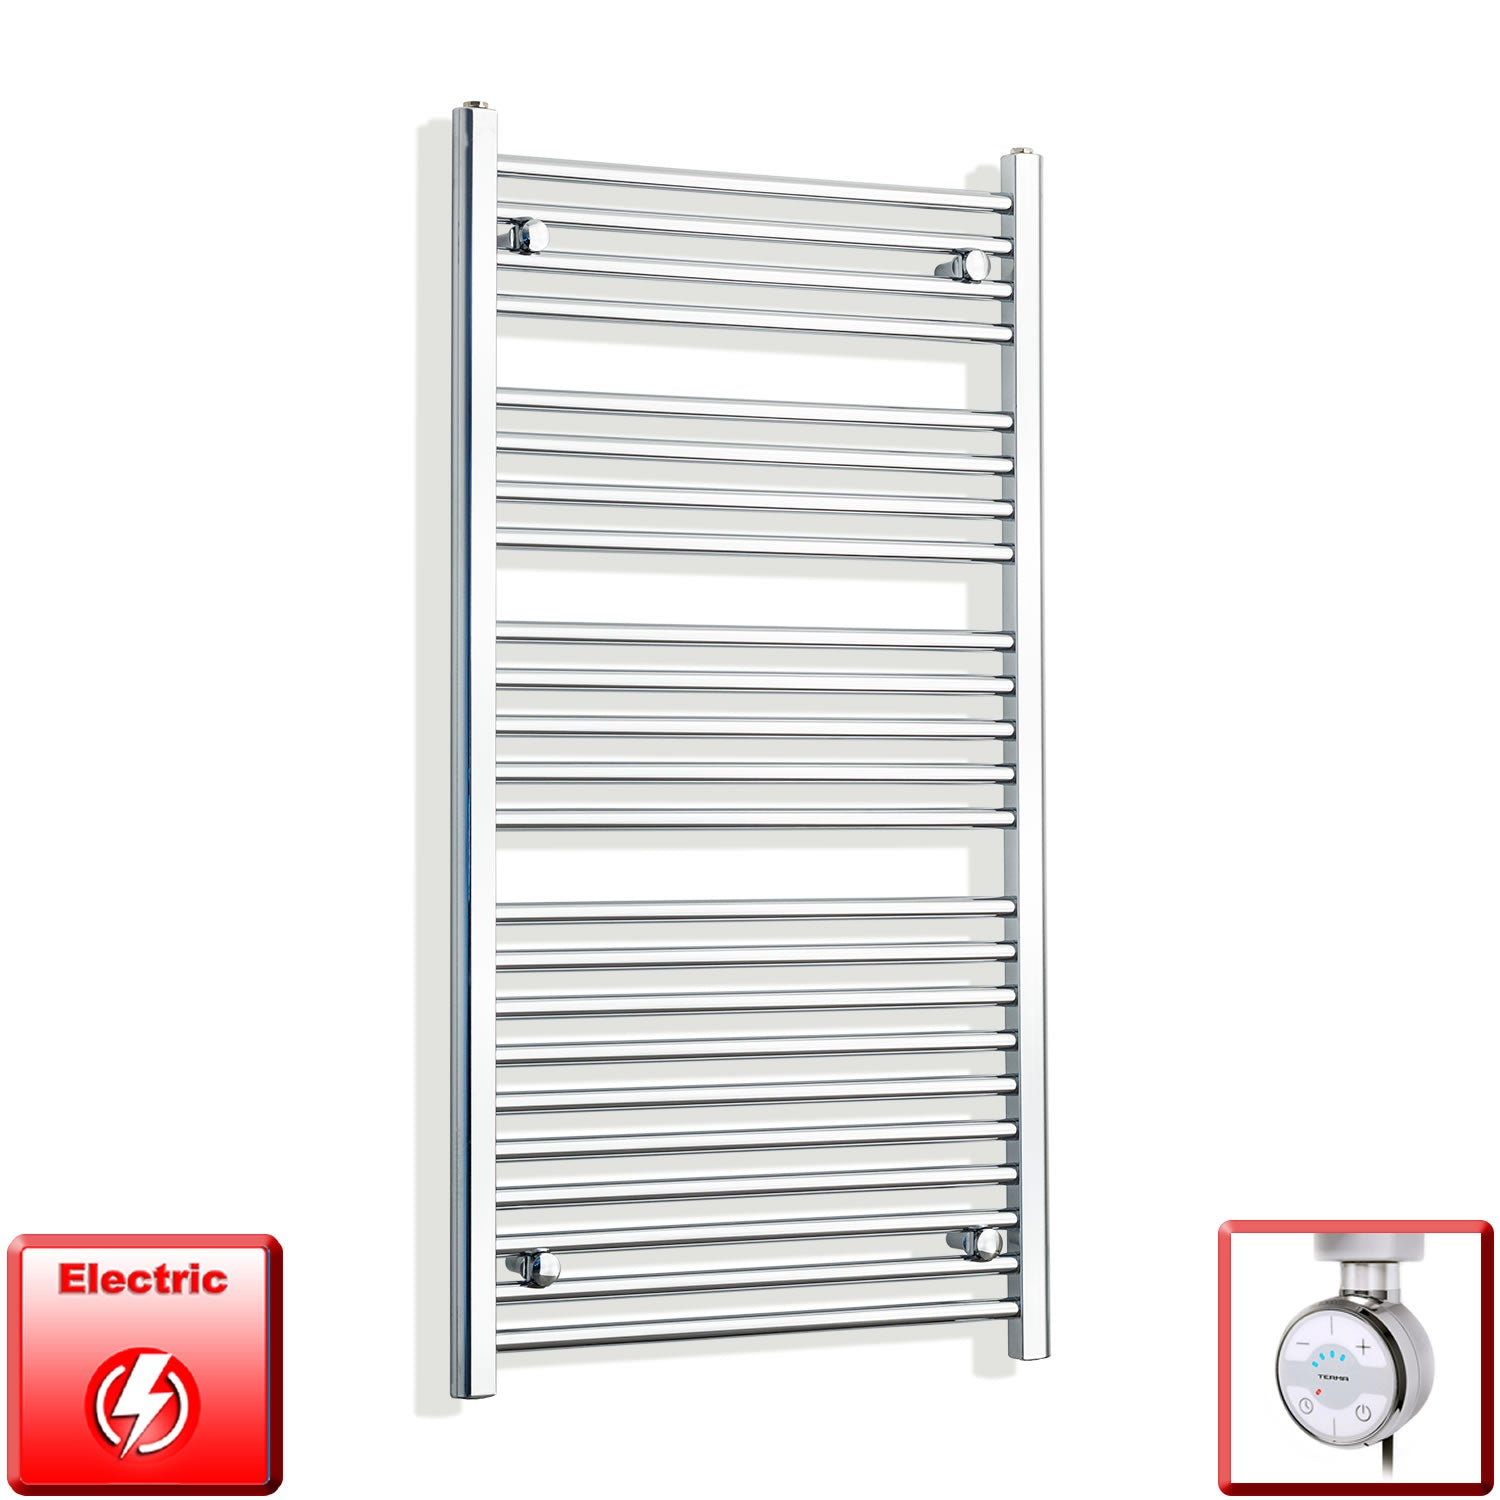 700mm Wide 1200mm High Pre-Filled Chrome Electric Towel Rail Radiator With Thermostatic MOA Element